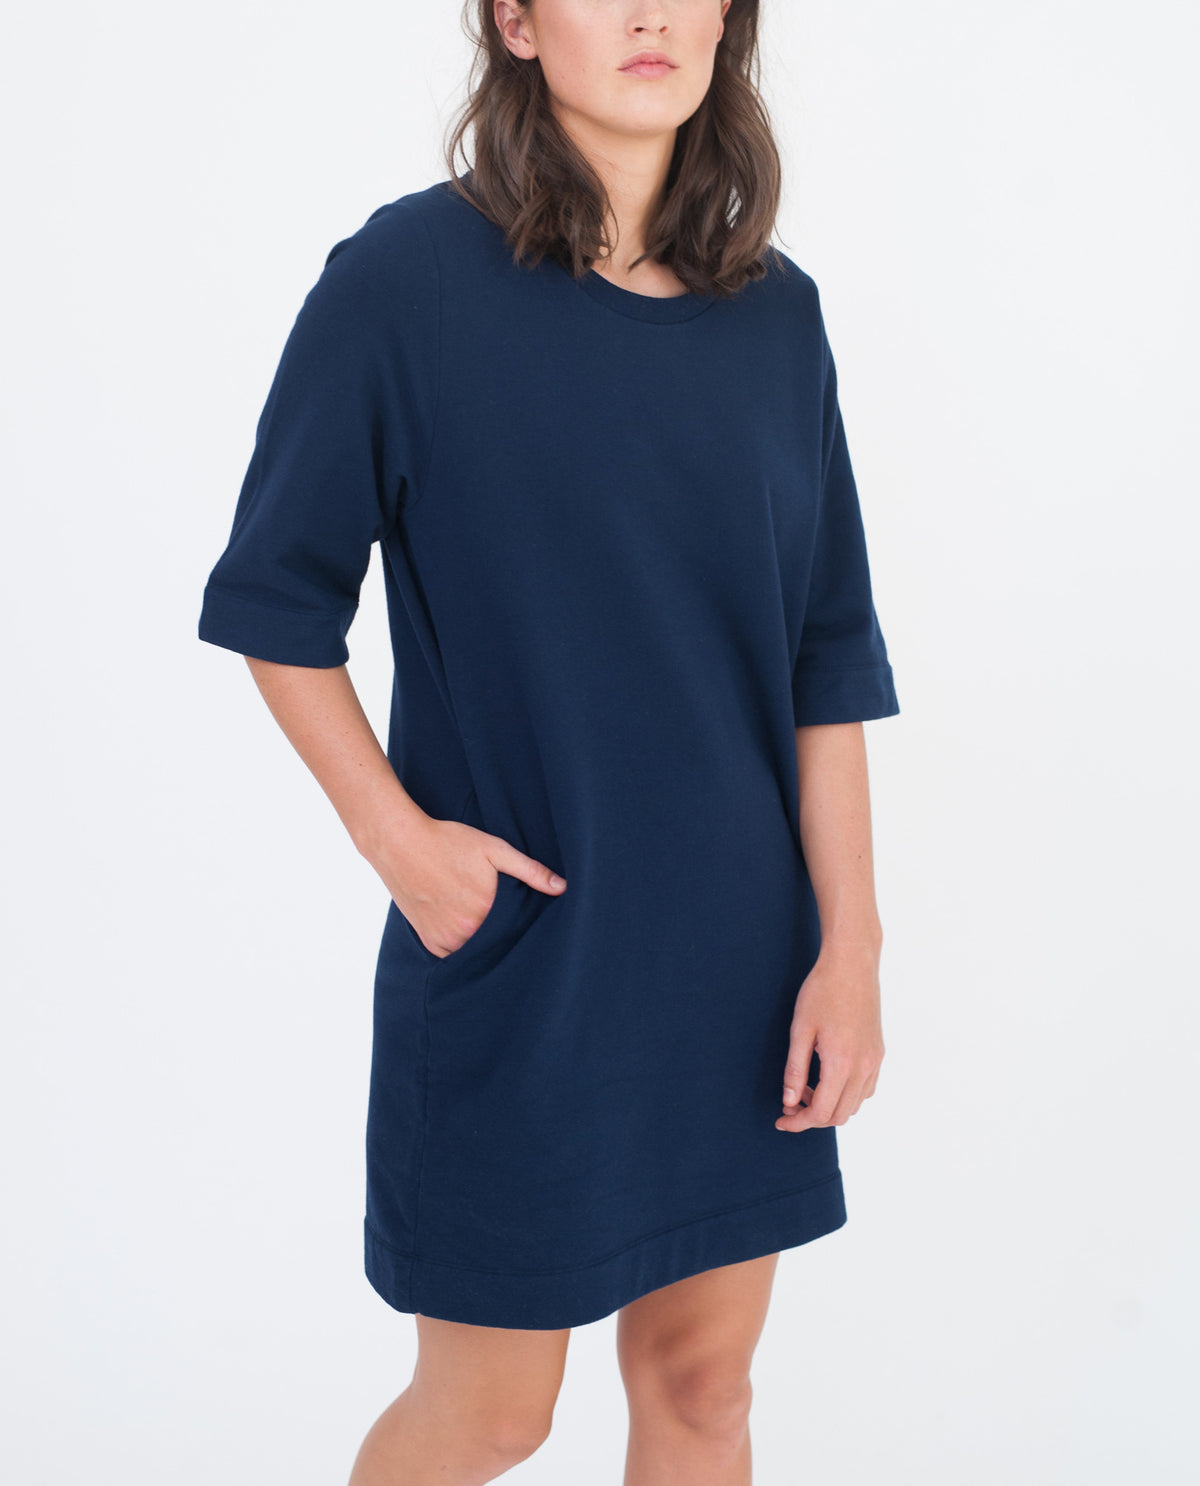 CHLOE Organic Cotton Dress In Navy